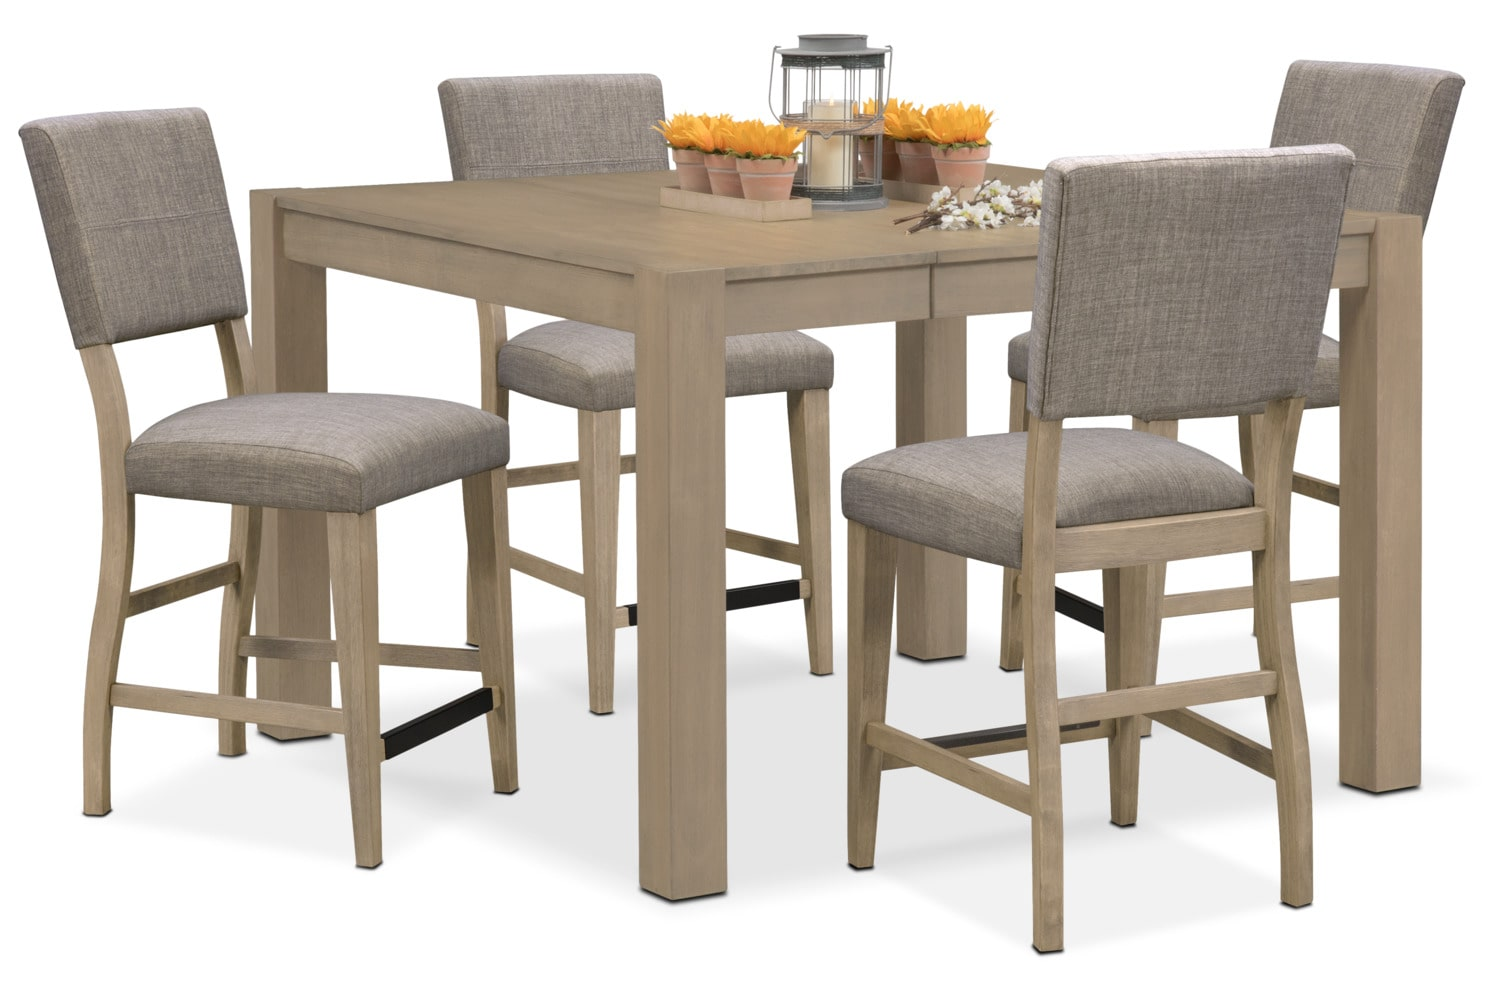 Dining Room Furniture - Tribeca Counter-Height Dining Table and 4 Upholstered Dining Chairs